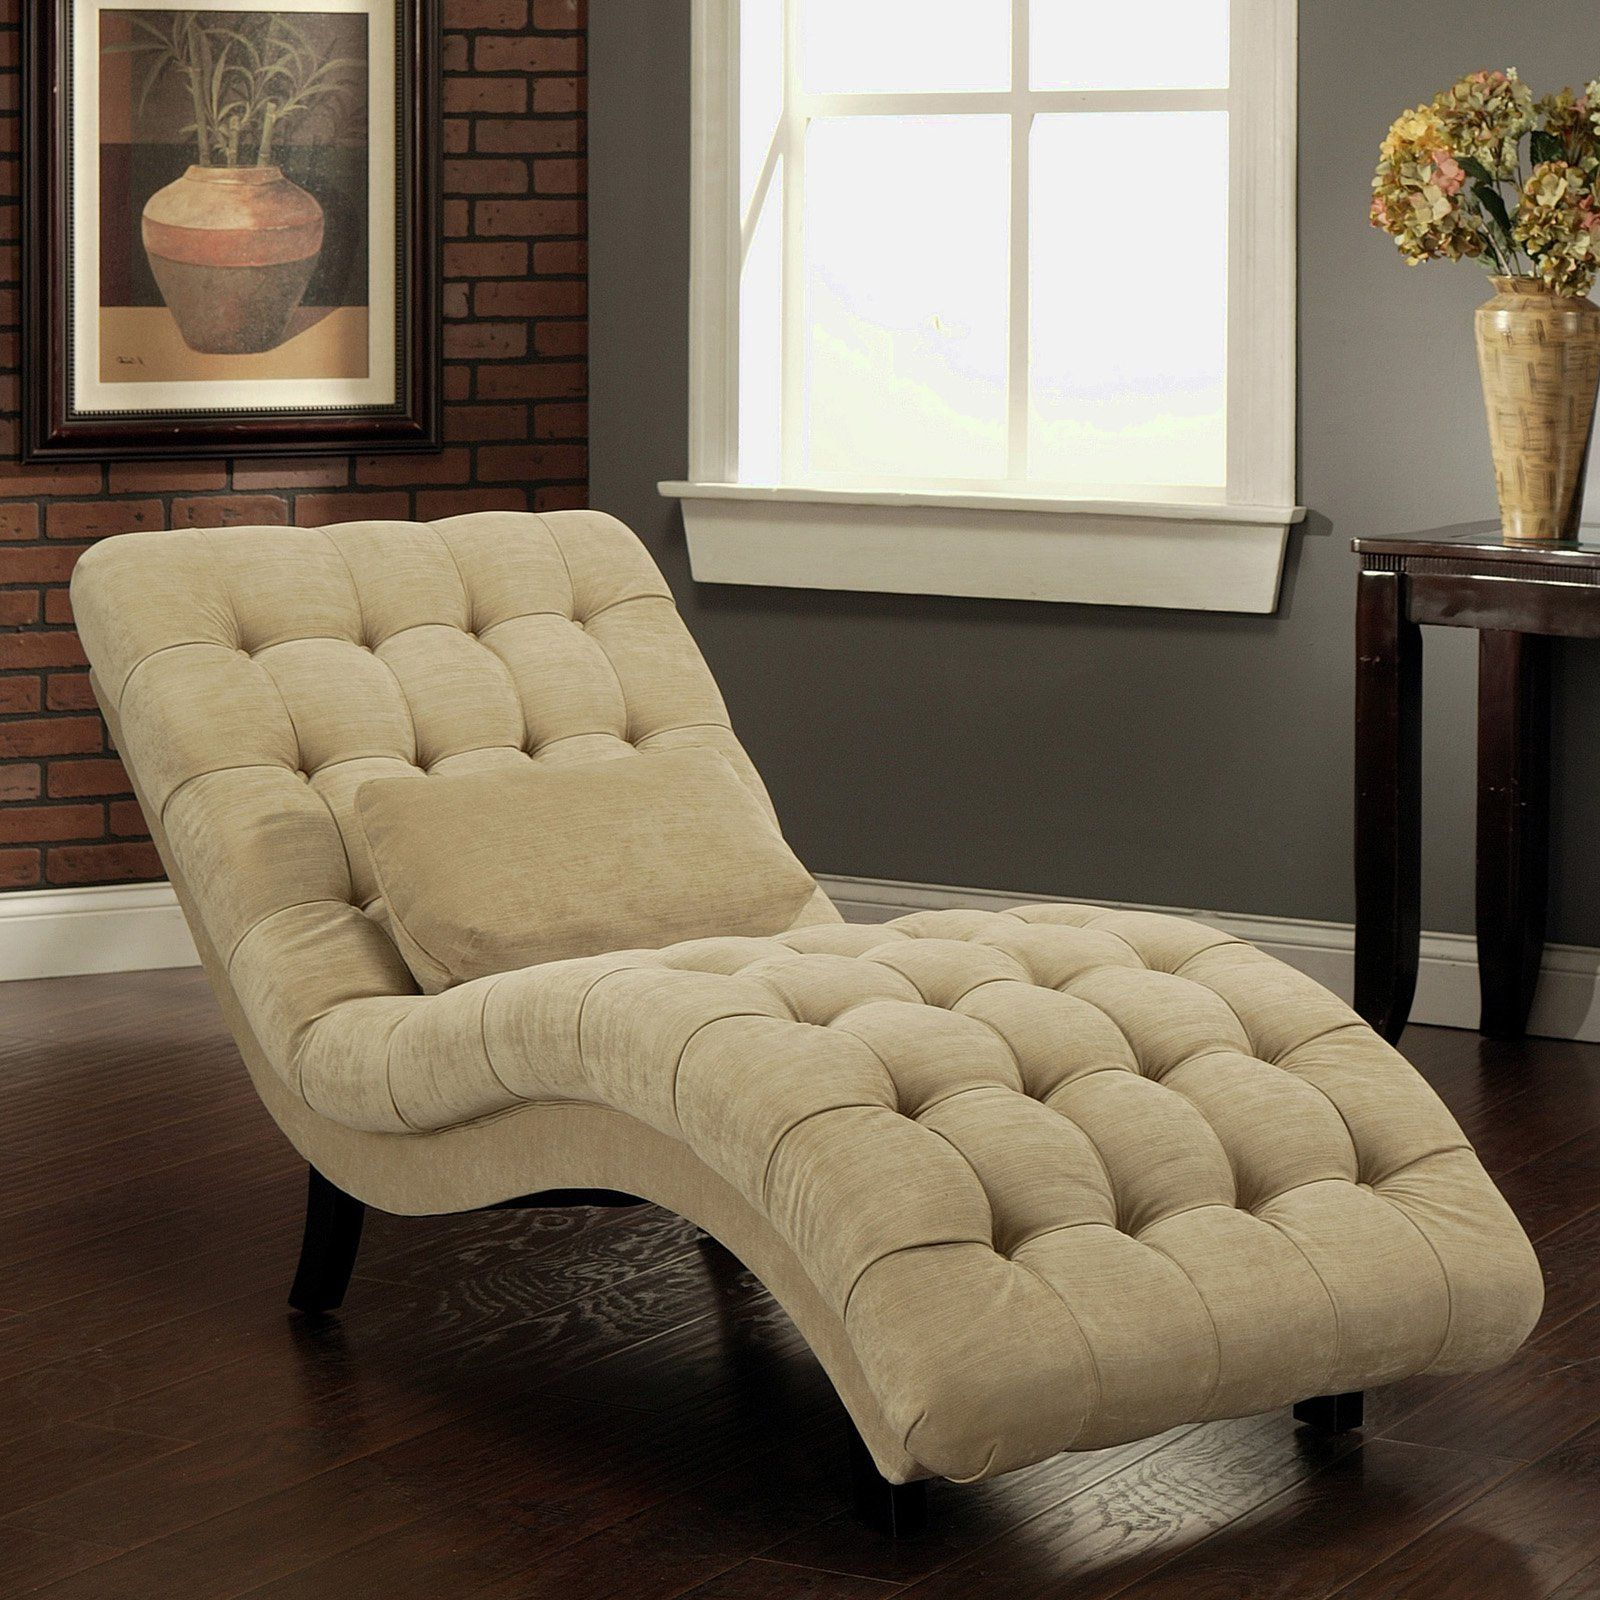 Thatcher Fabric Chaise Lounge The Thatcher Fabric Chaise Lounge